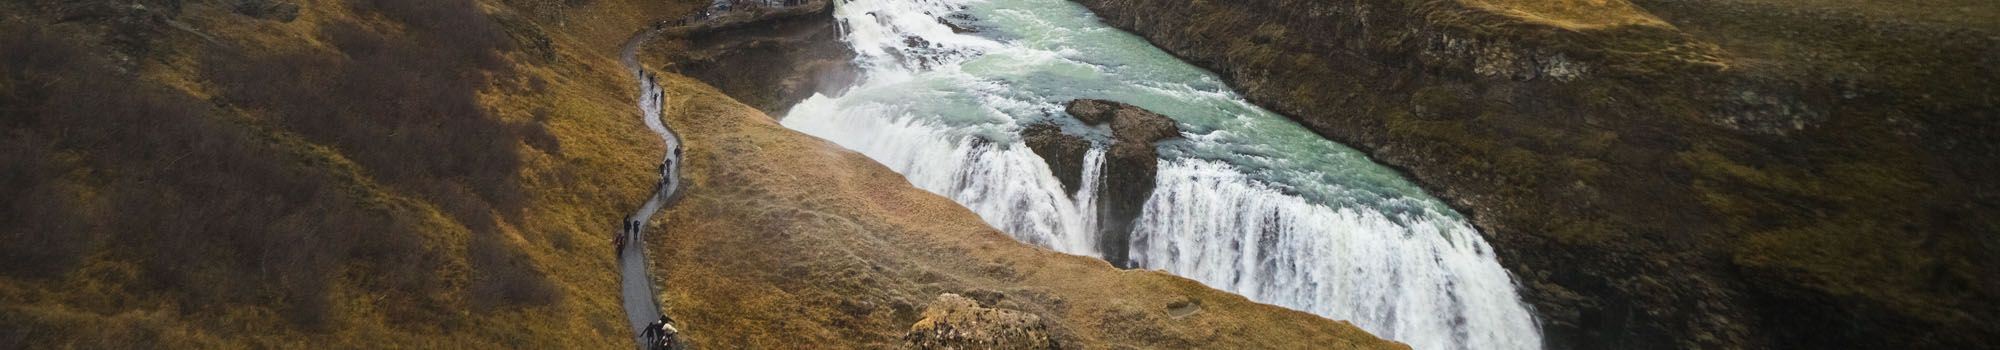 Gullfoss waterfall on Golden Circle